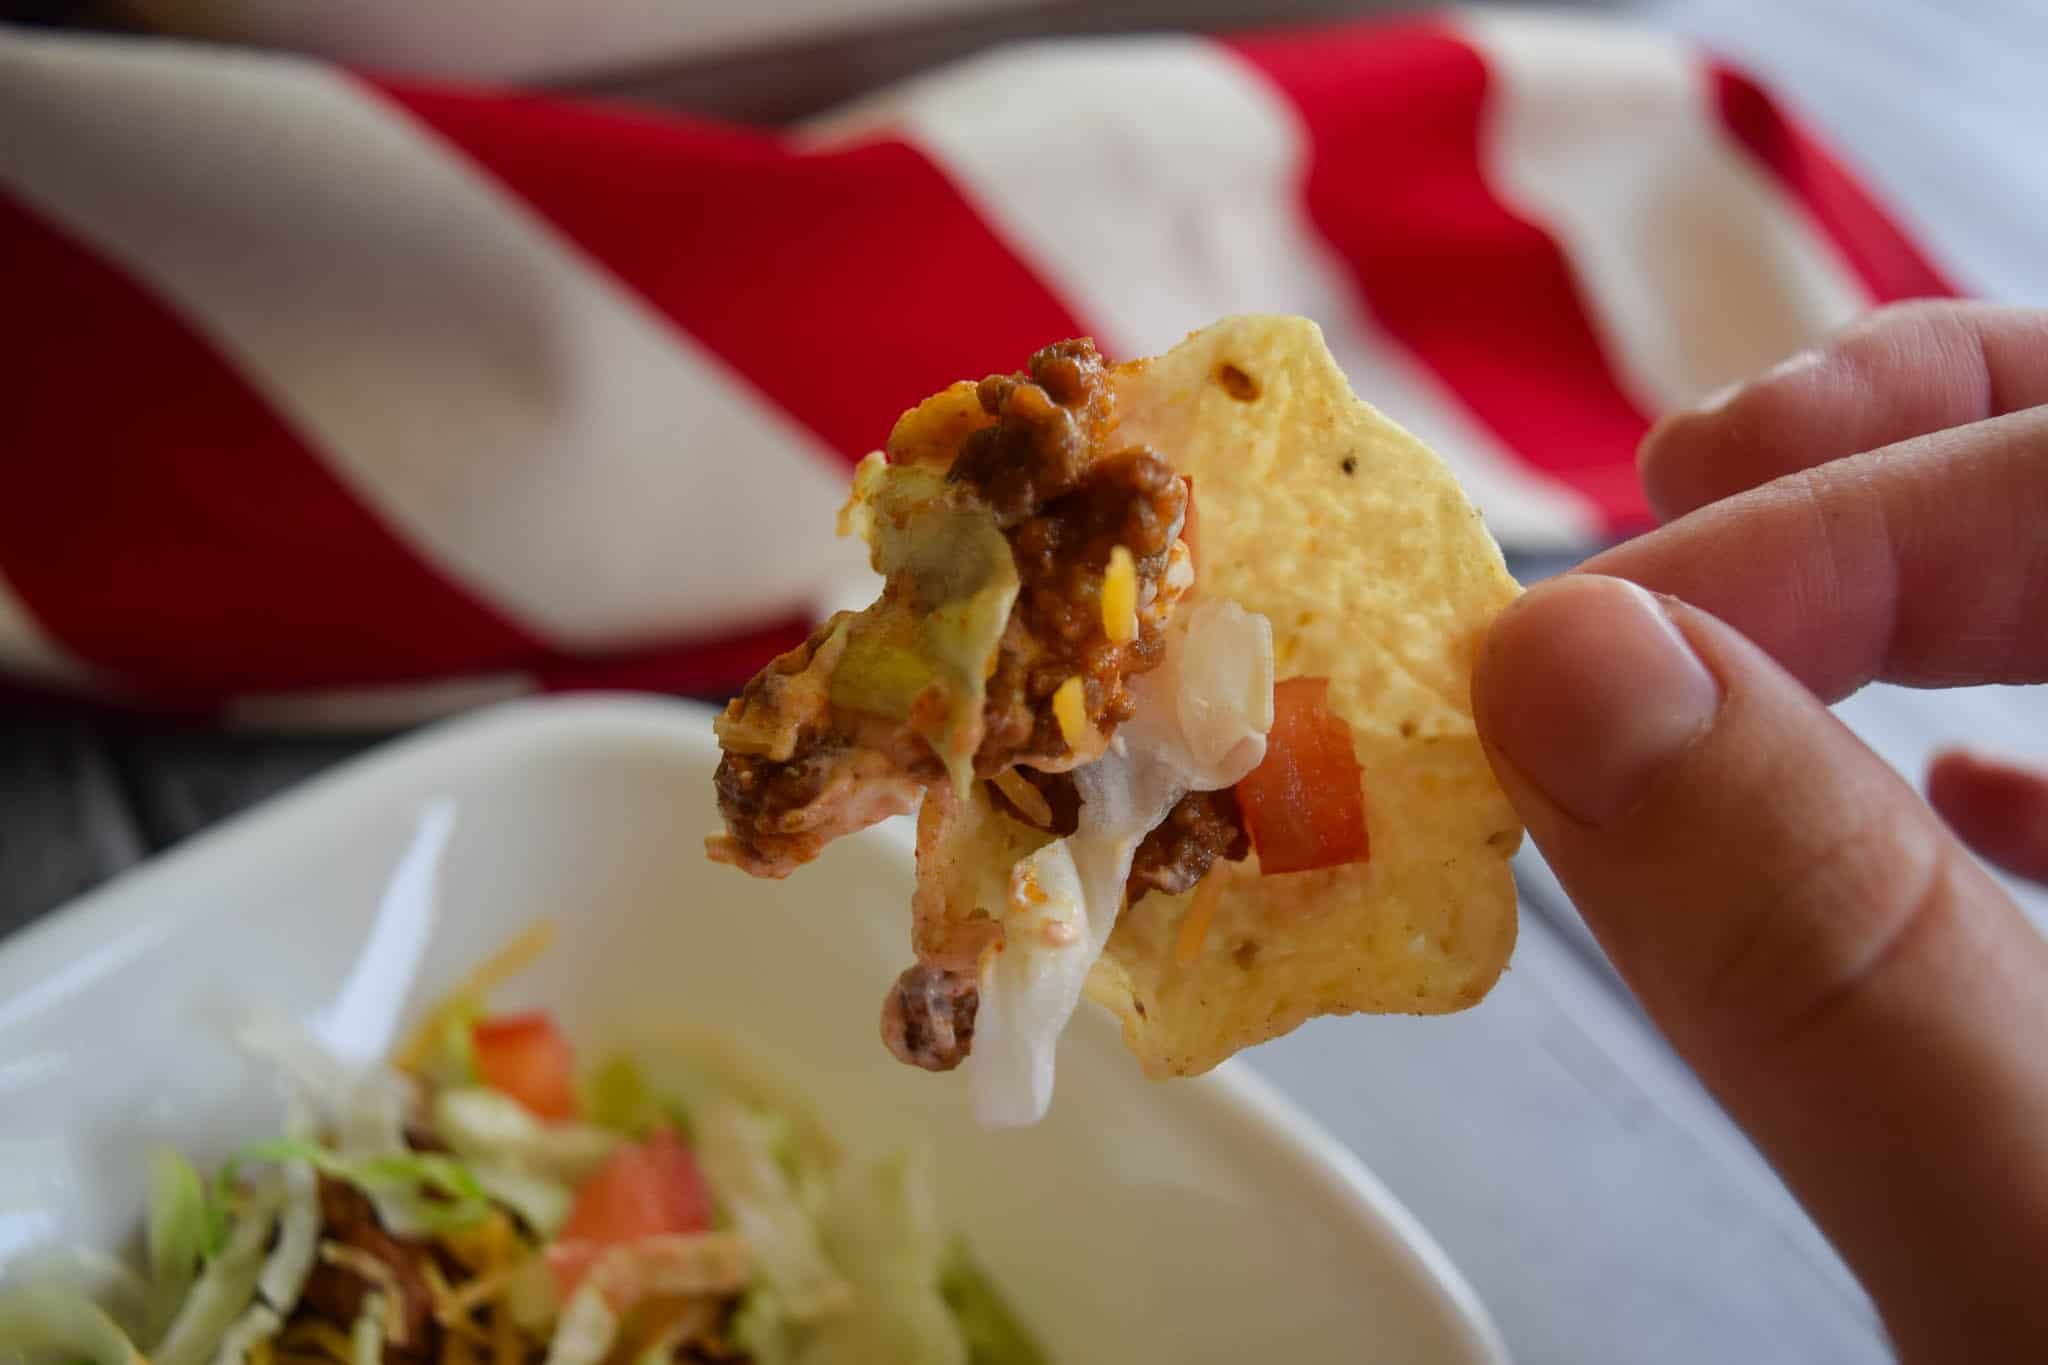 Taco dip scooped onto tortilla chip being held by hand close up view